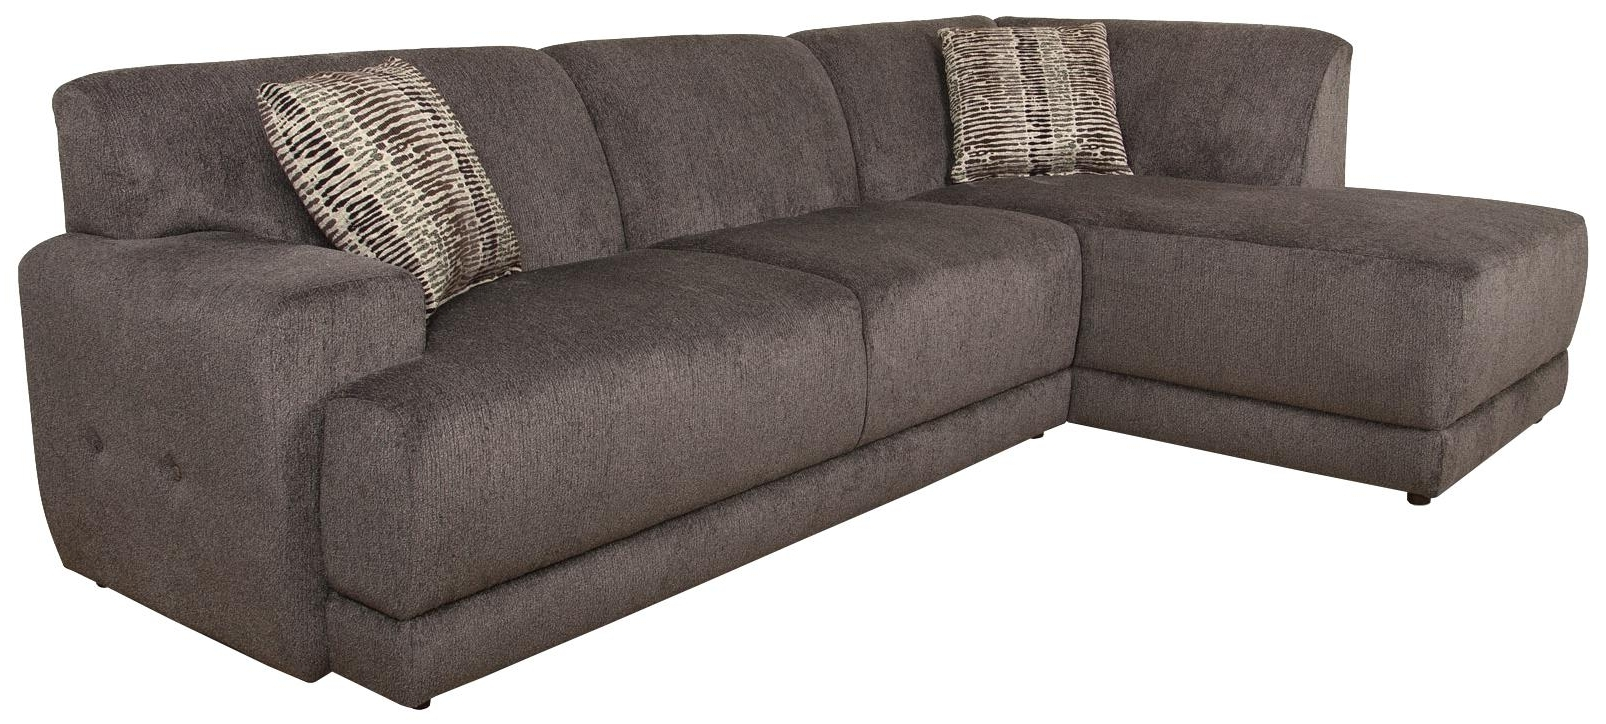 Quincy Il Sectional Sofas Intended For Trendy Lackawanna Sectional Sofaengland – Sherman's – Reclining (View 6 of 20)